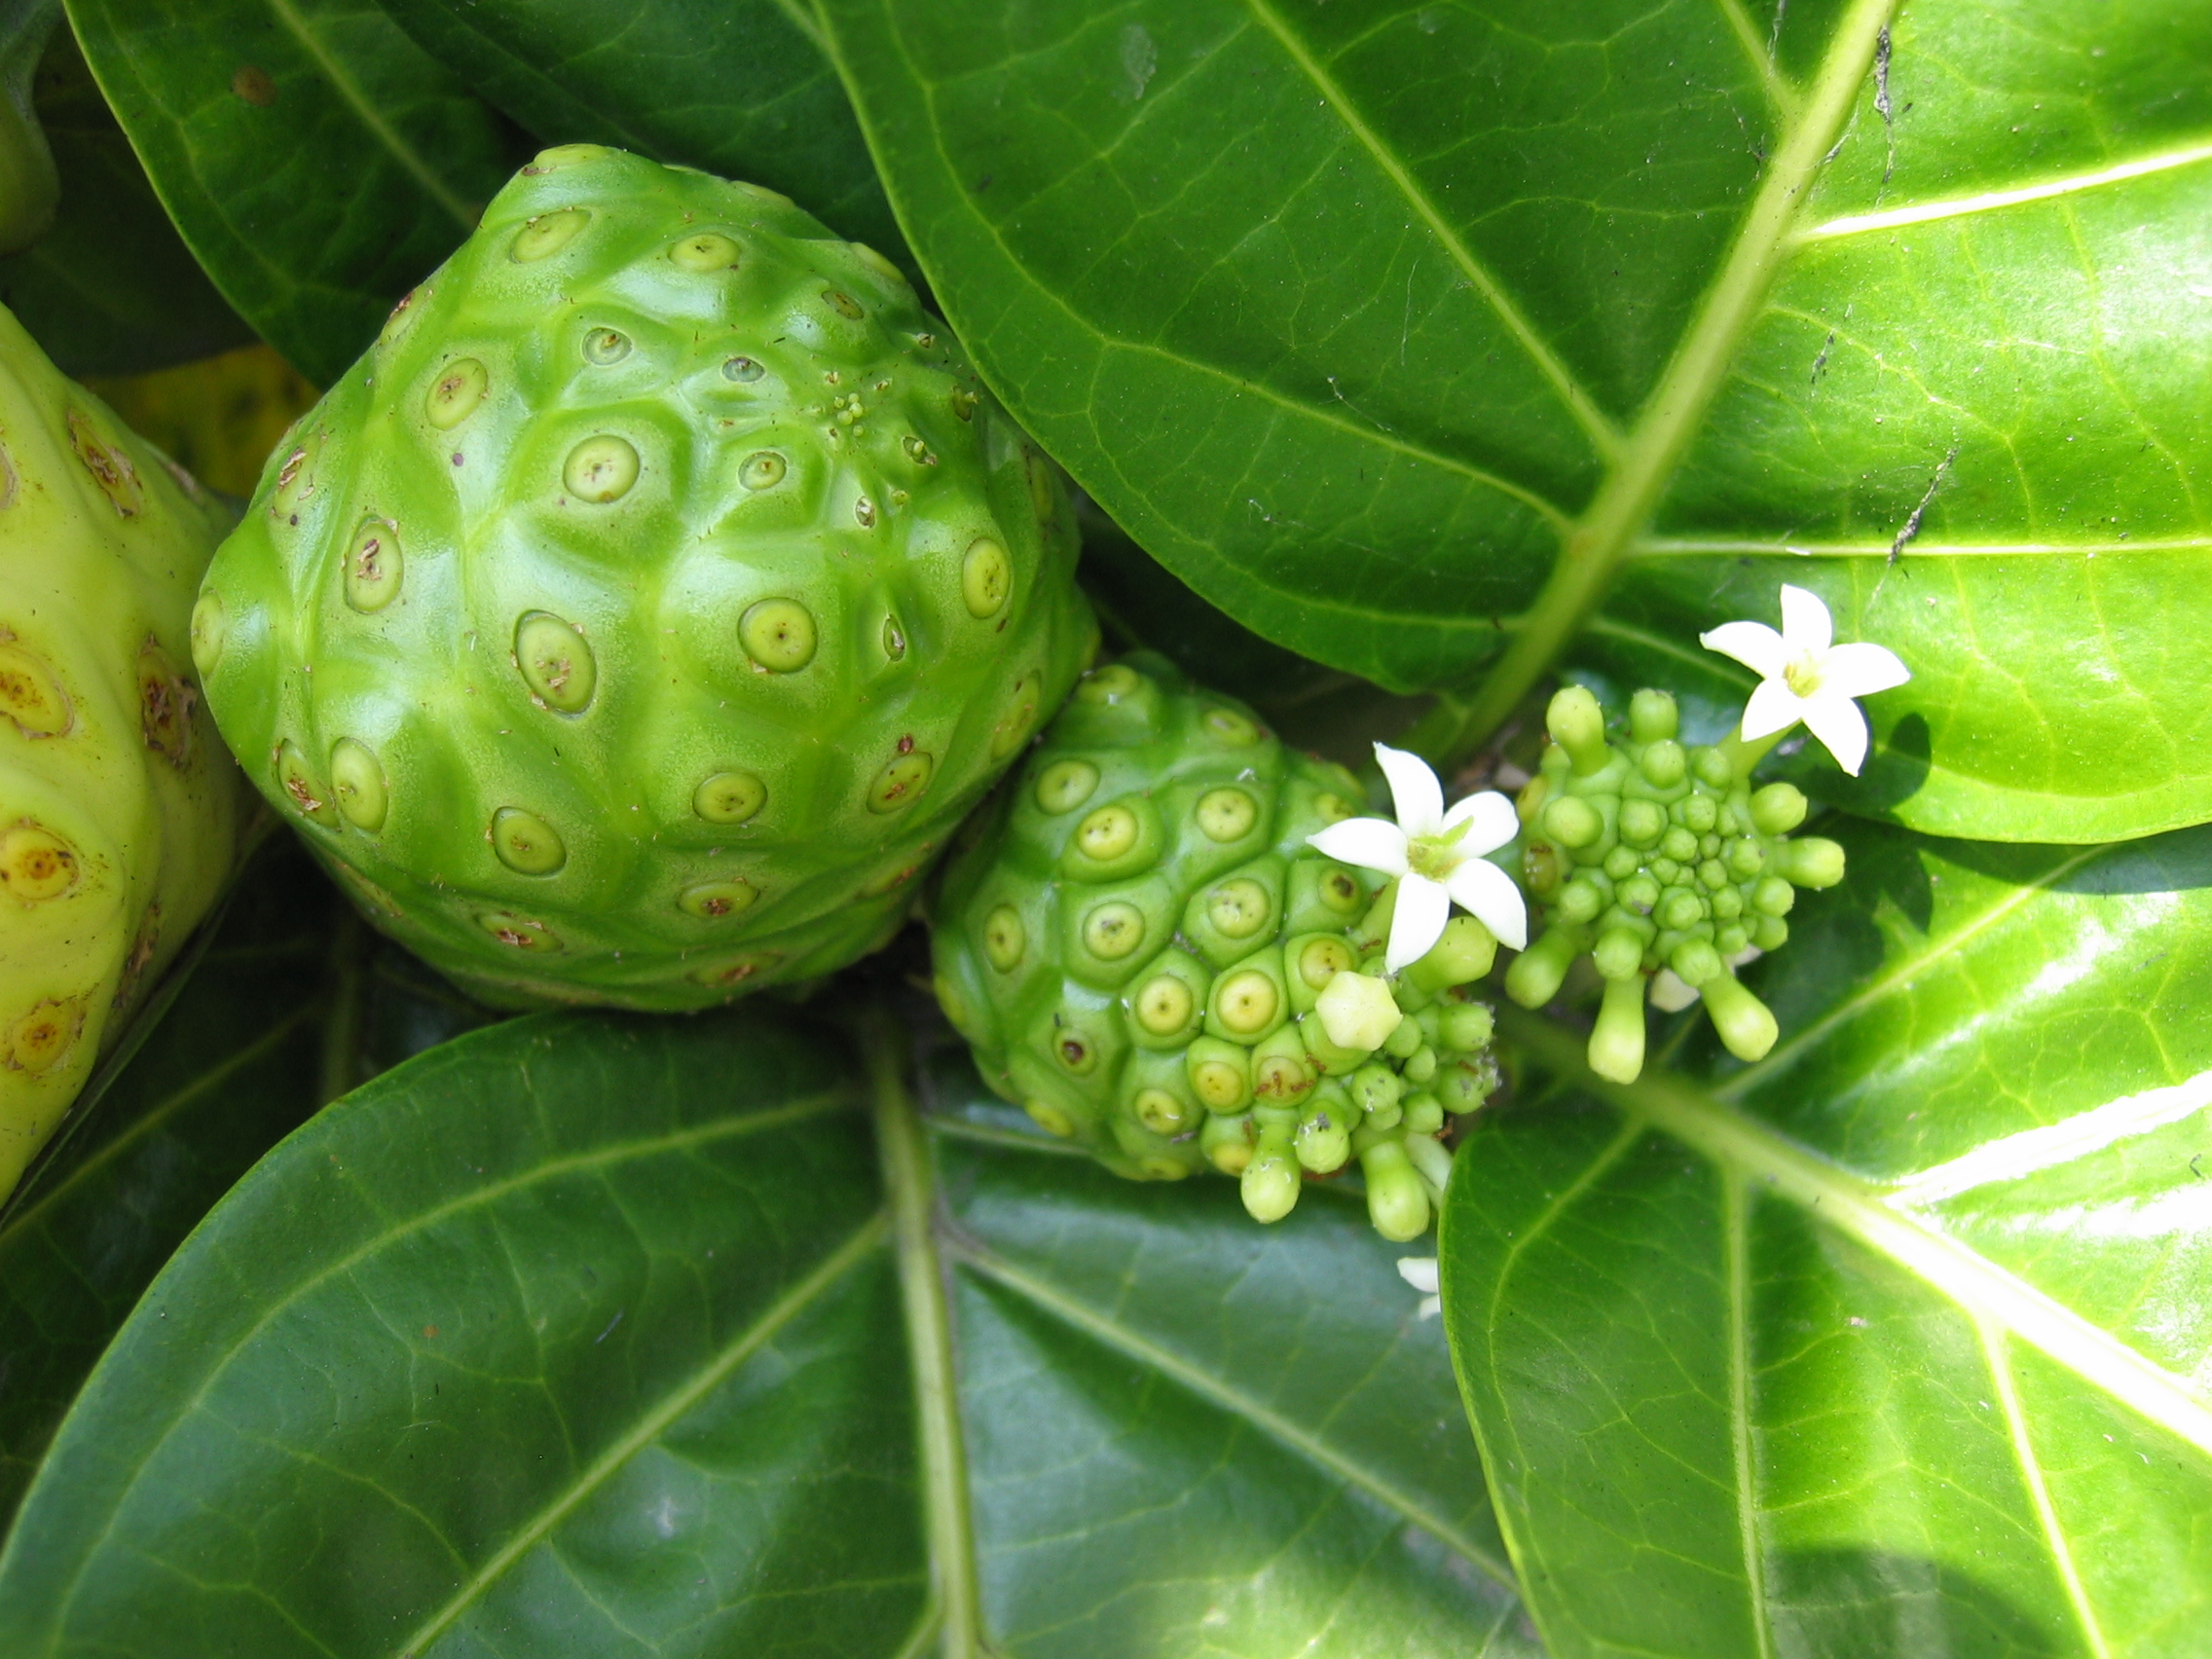 Noni_fruits_and_flowers_(Morinda_citrifolia).JPG